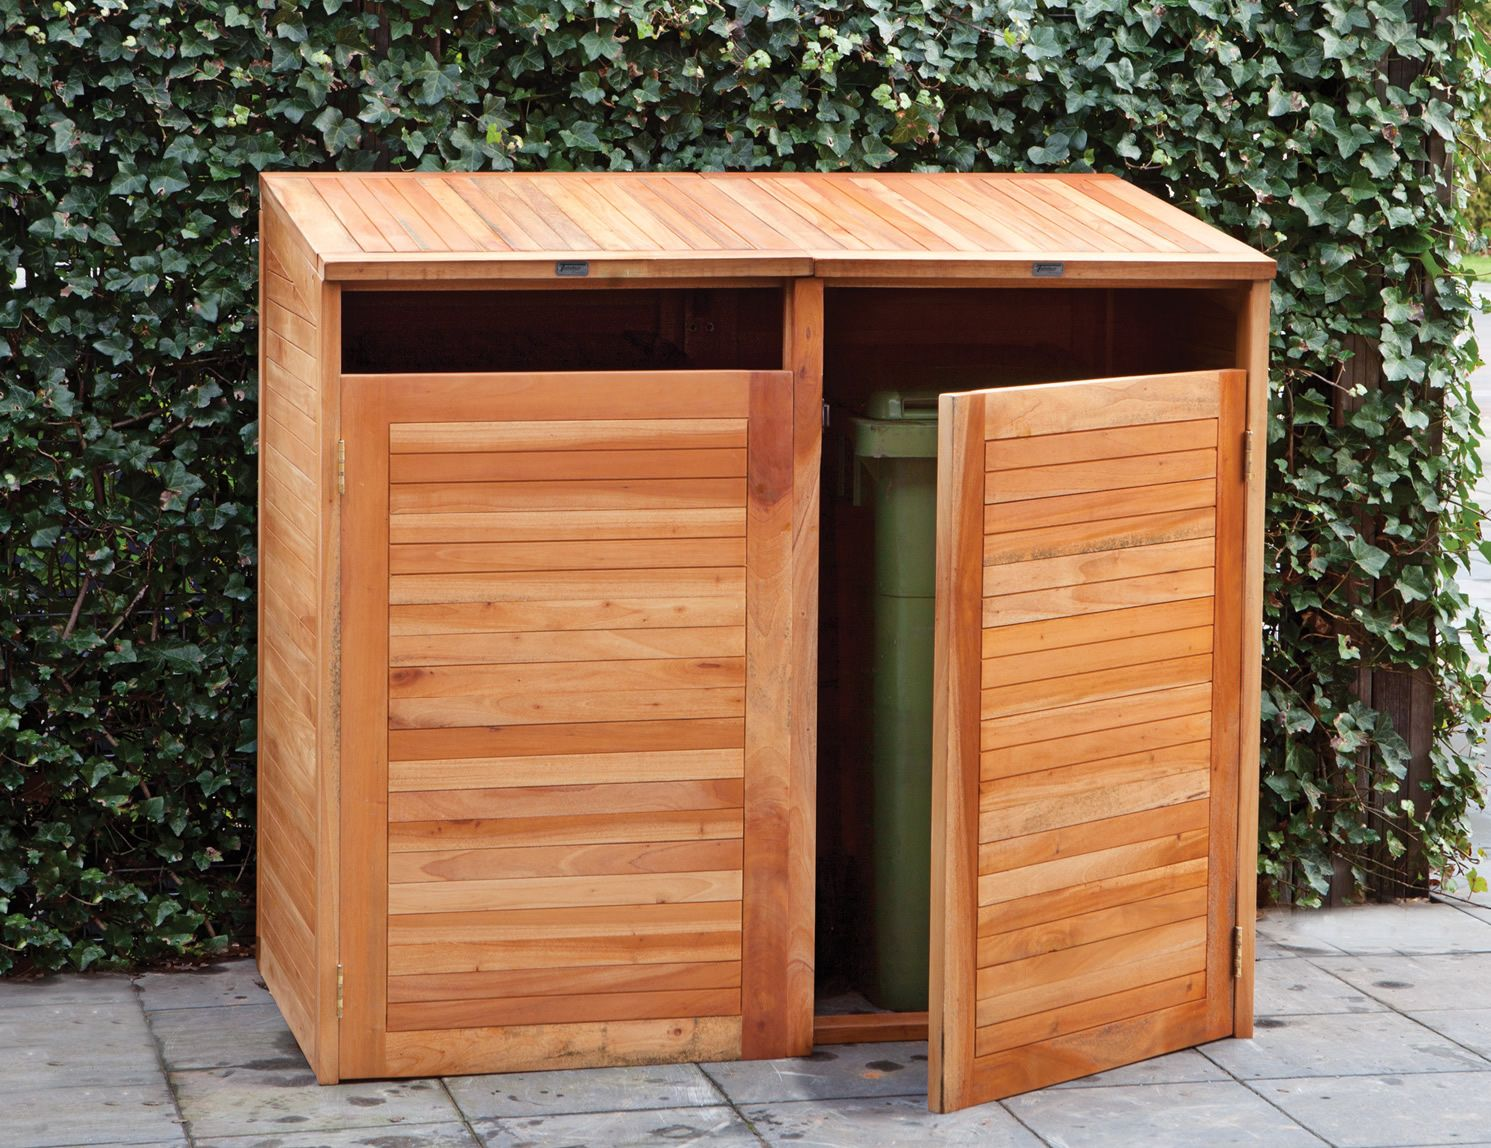 Hardwood Double Wheelie Bin Store Hide Those Bins